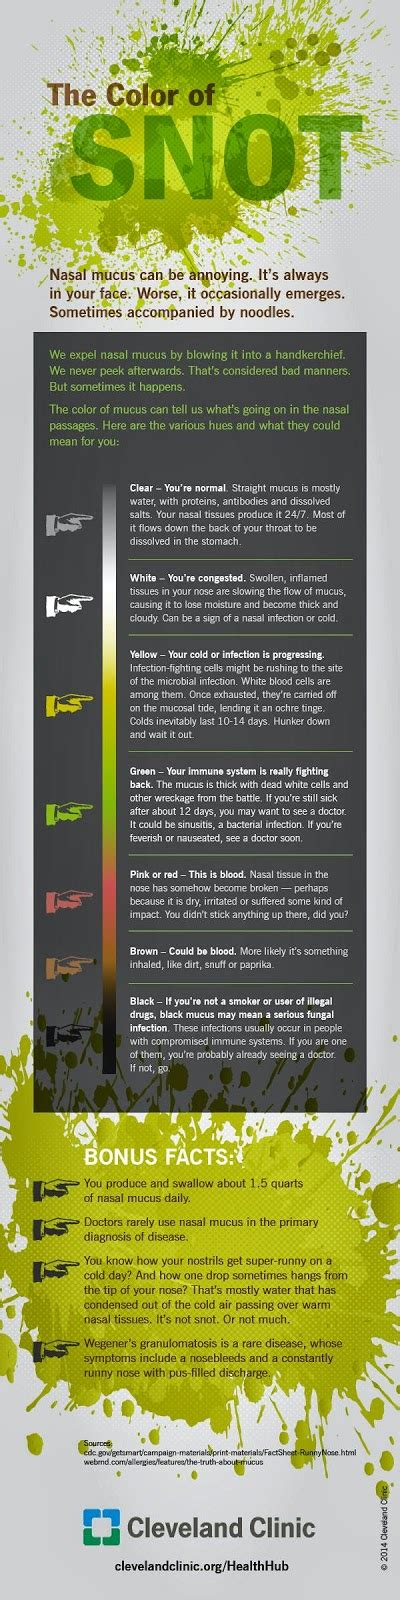 sinus infection mucus color color of snot infographic fauquier ent